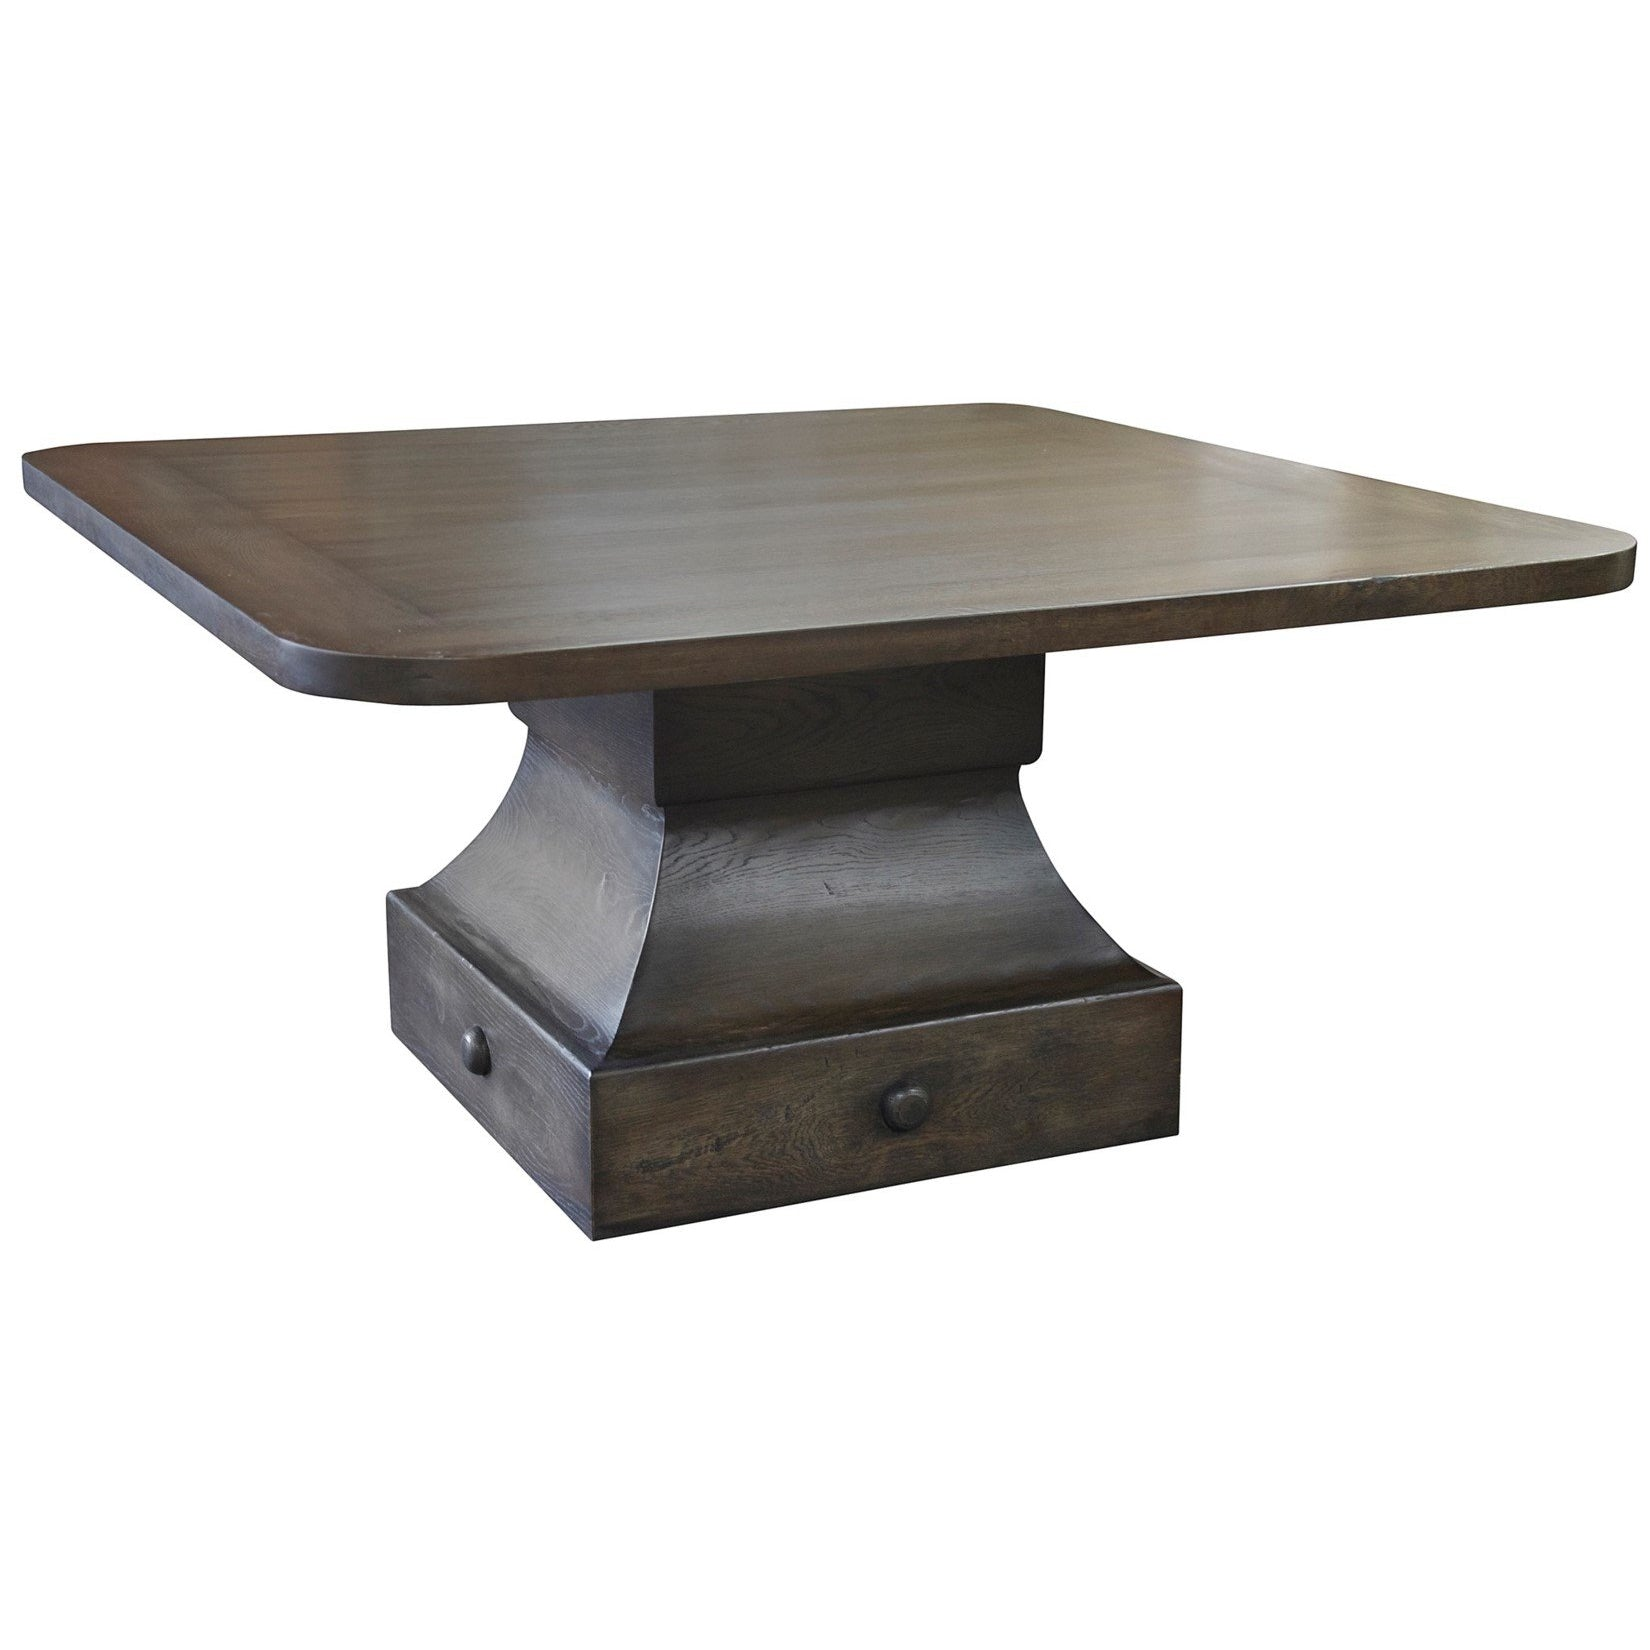 CFC Furniture Zinnia Dining Table - 60in